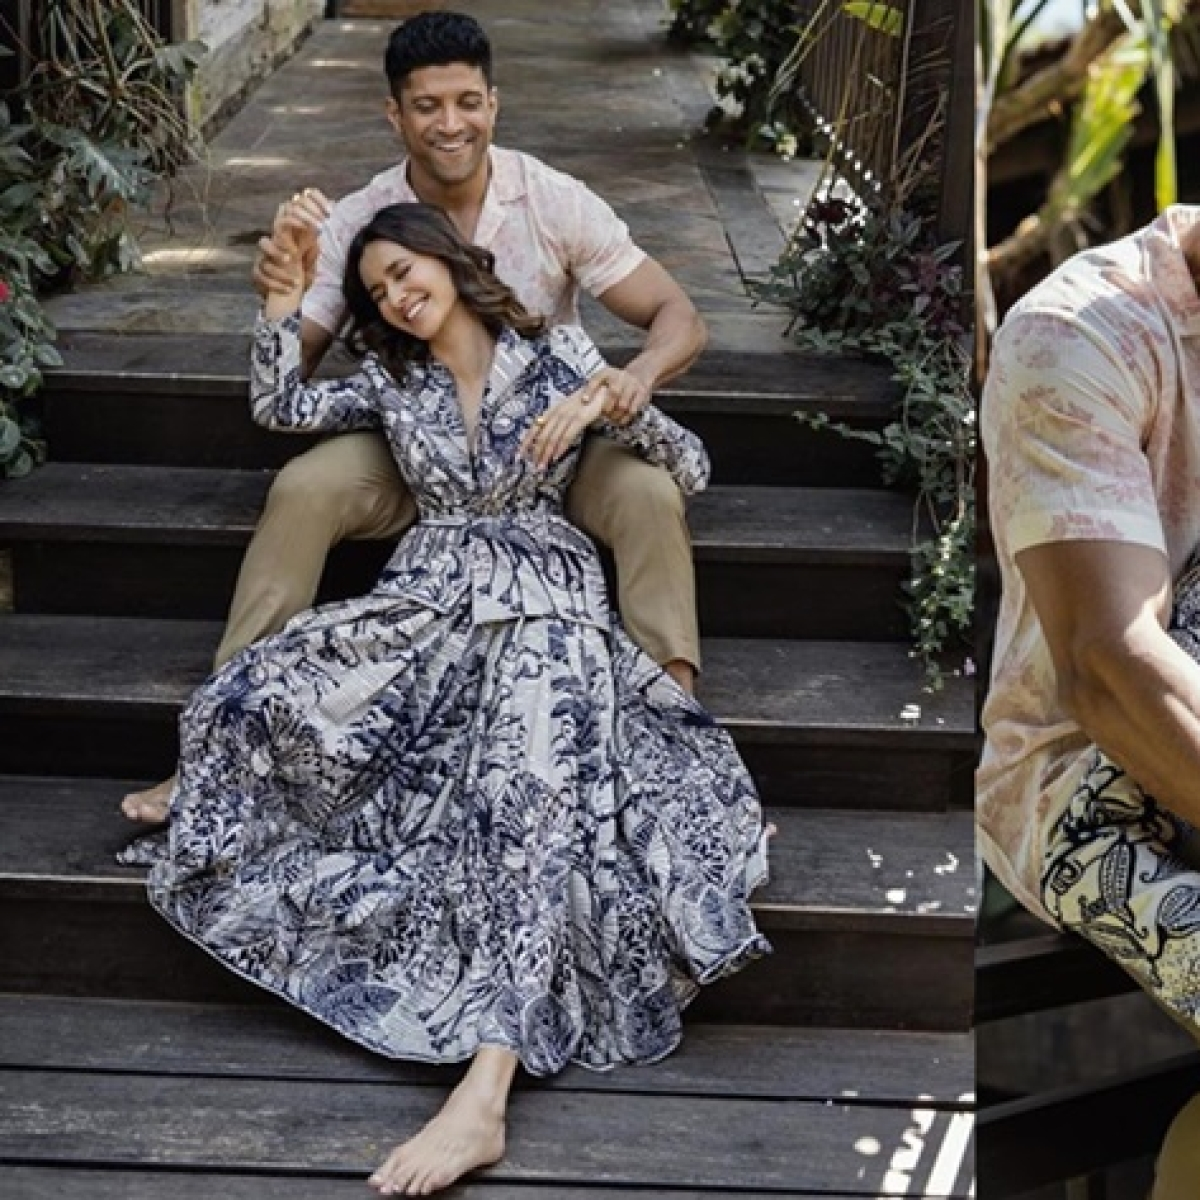 '730 not out': Farhan Akhtar wishes Shibani Dandekar on their second anniversary